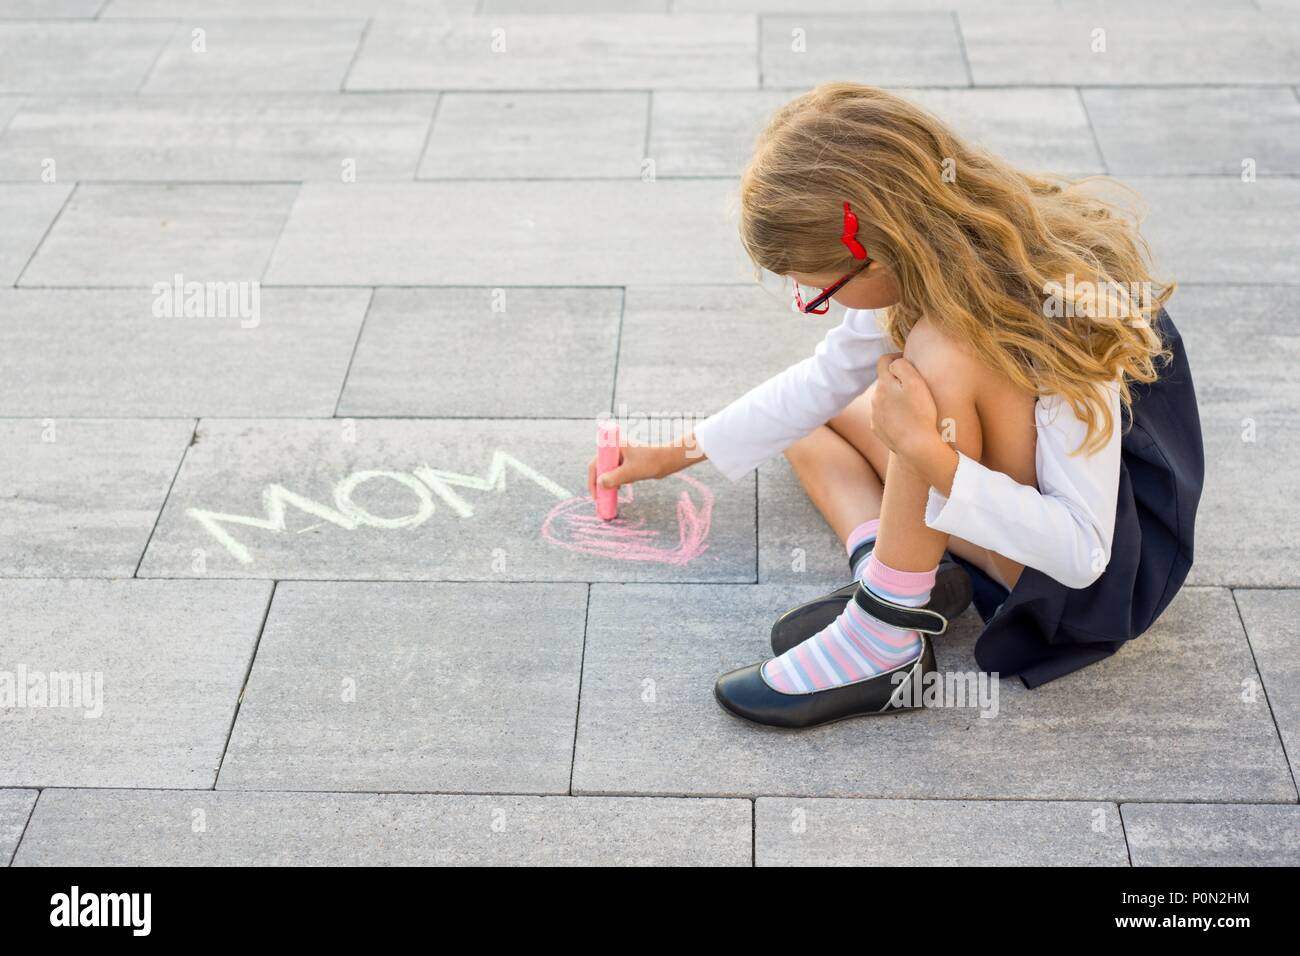 Picture gift for mother. A little girl draws colored crayons on the asphalt. Love mom. Mothers day Stock Photo